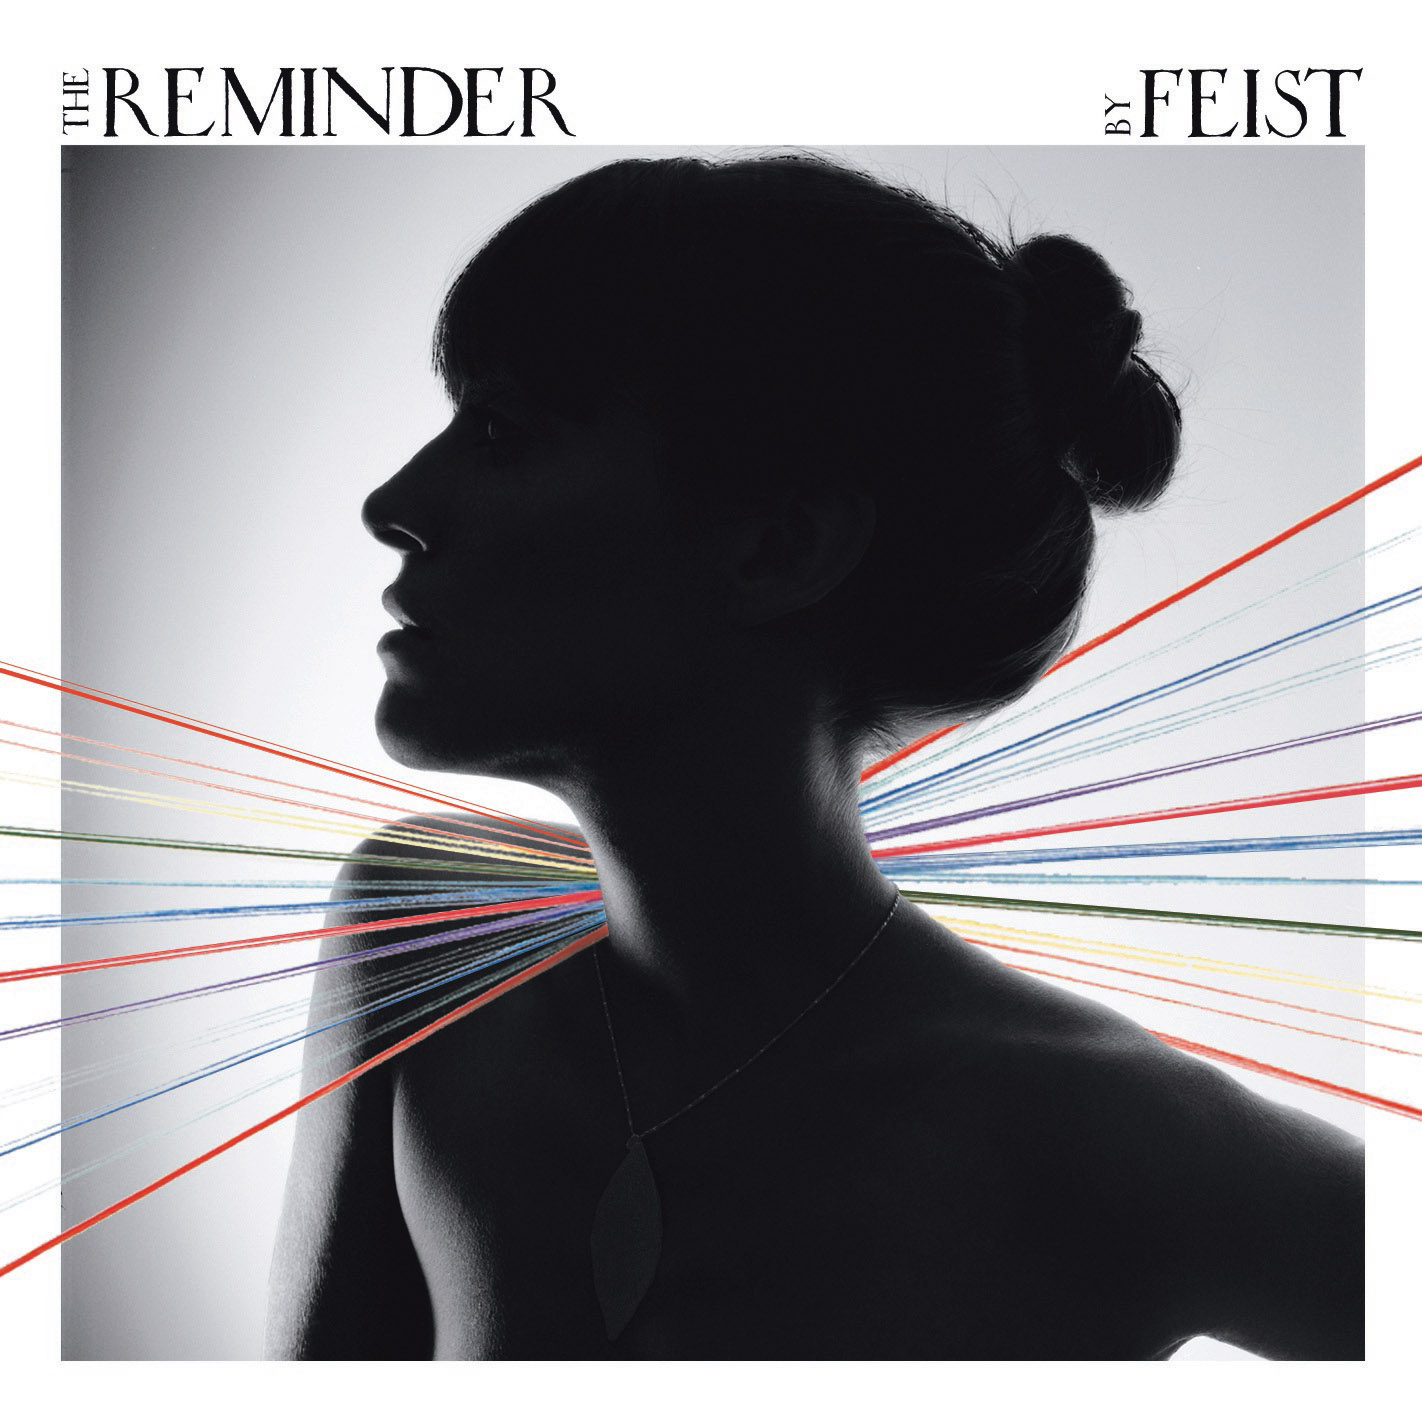 feist the reminder Top 50 Songs of 2007